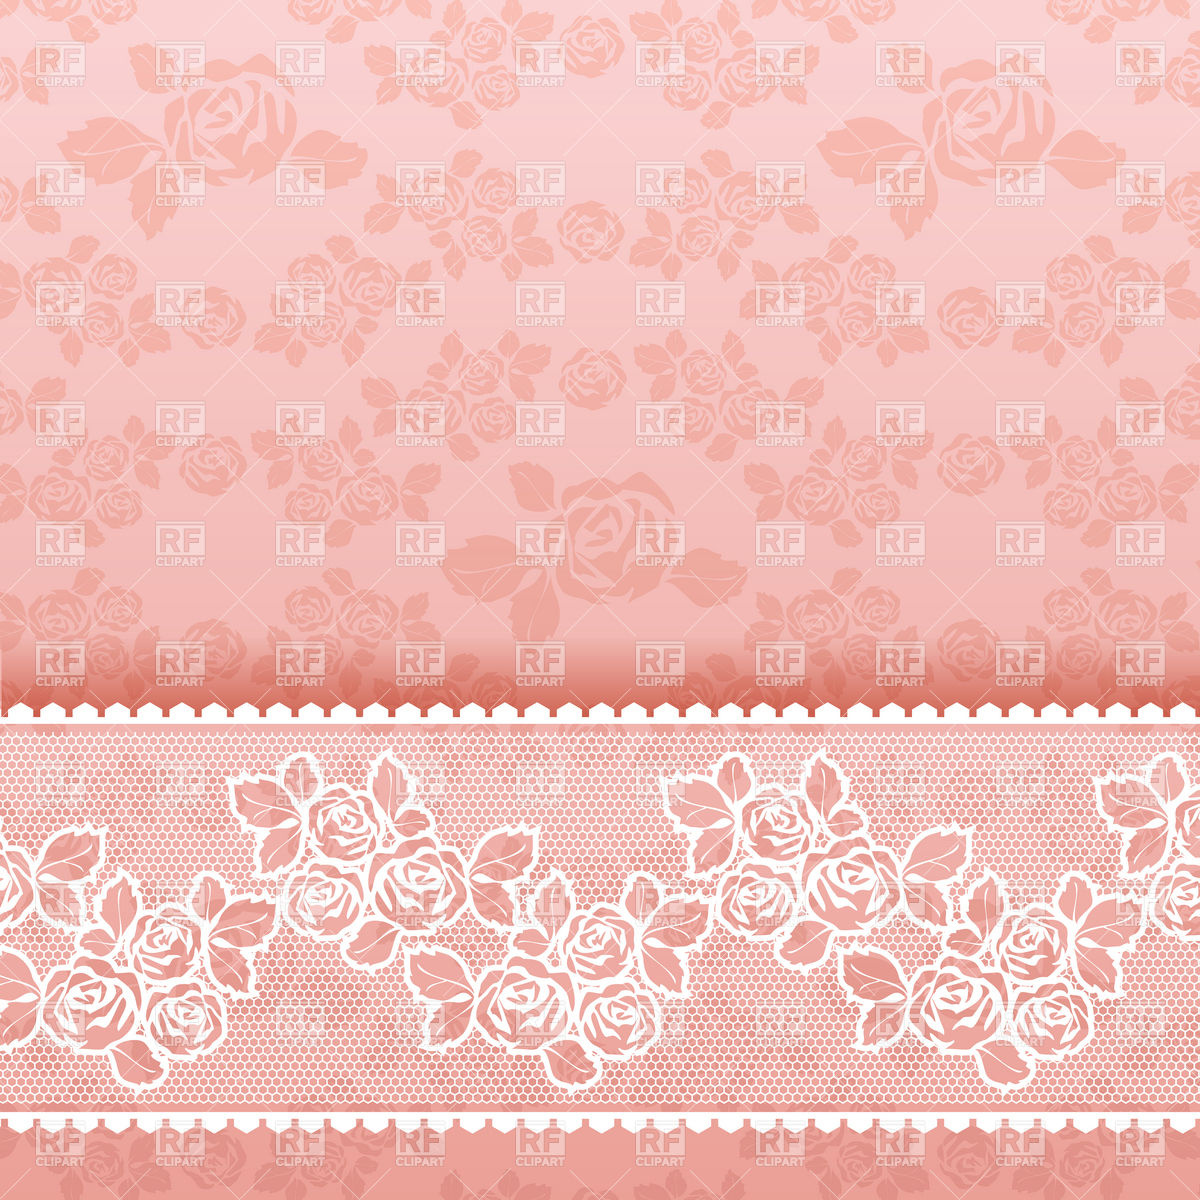 free download pink vintage wallpaper with roses backgrounds textures abstract 1200x1200 for your desktop mobile tablet explore 46 vintage pink wallpaper wallpapers for desktop pink vintage pink rose wallpaper free download pink vintage wallpaper